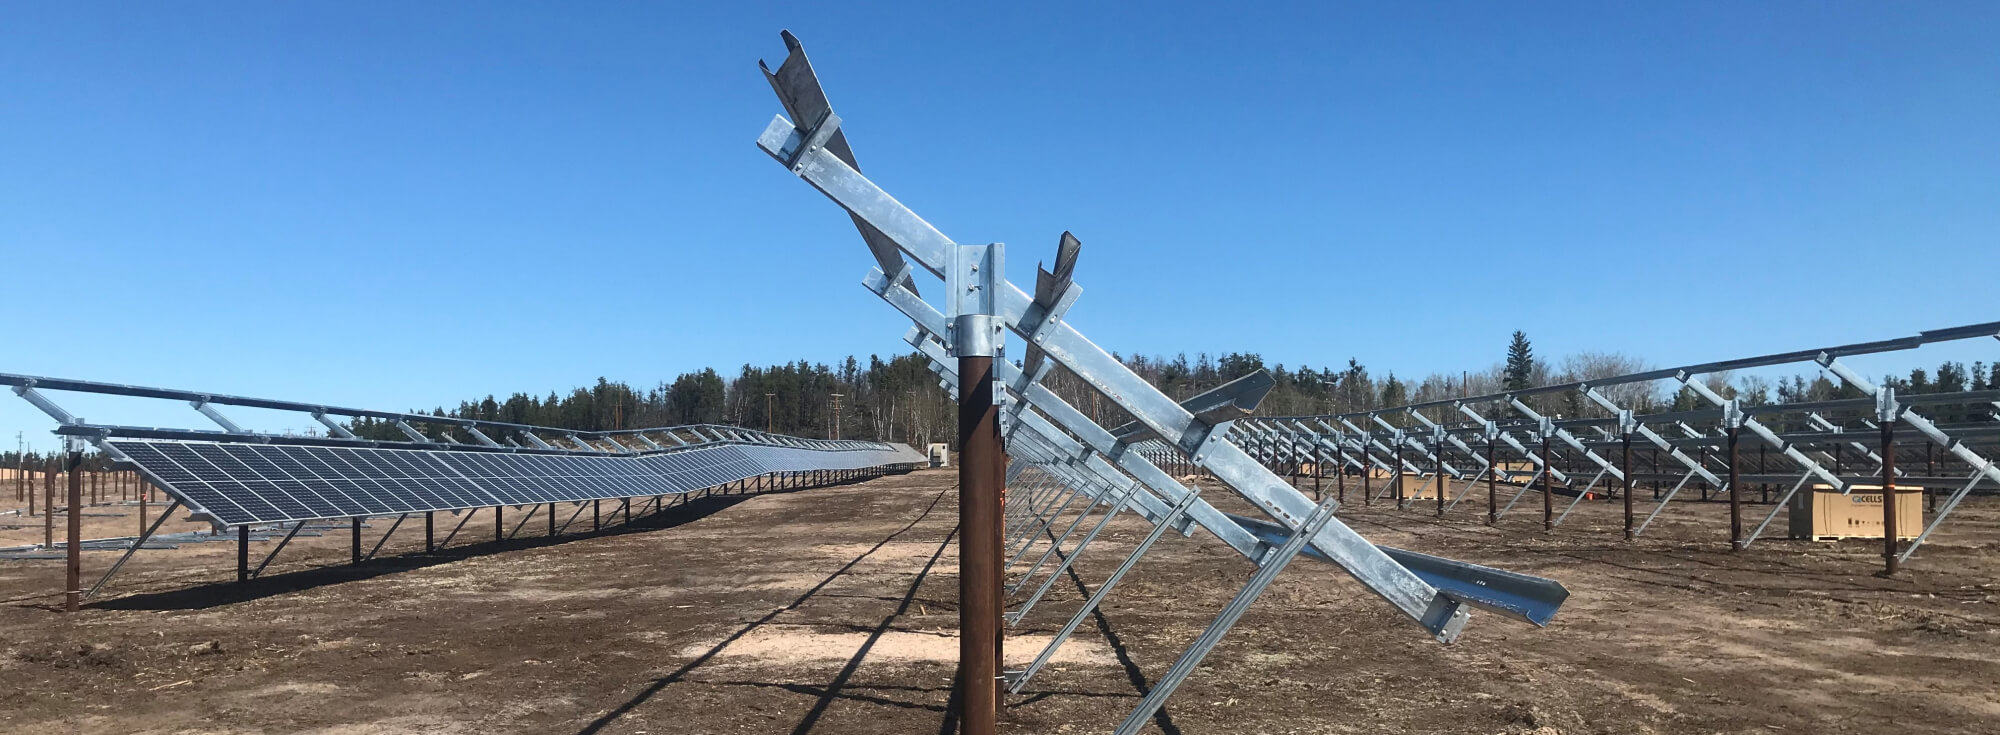 Canadian Polar Racking Supplies Mounting System for Canada's Largest Off Grid Solar Farm